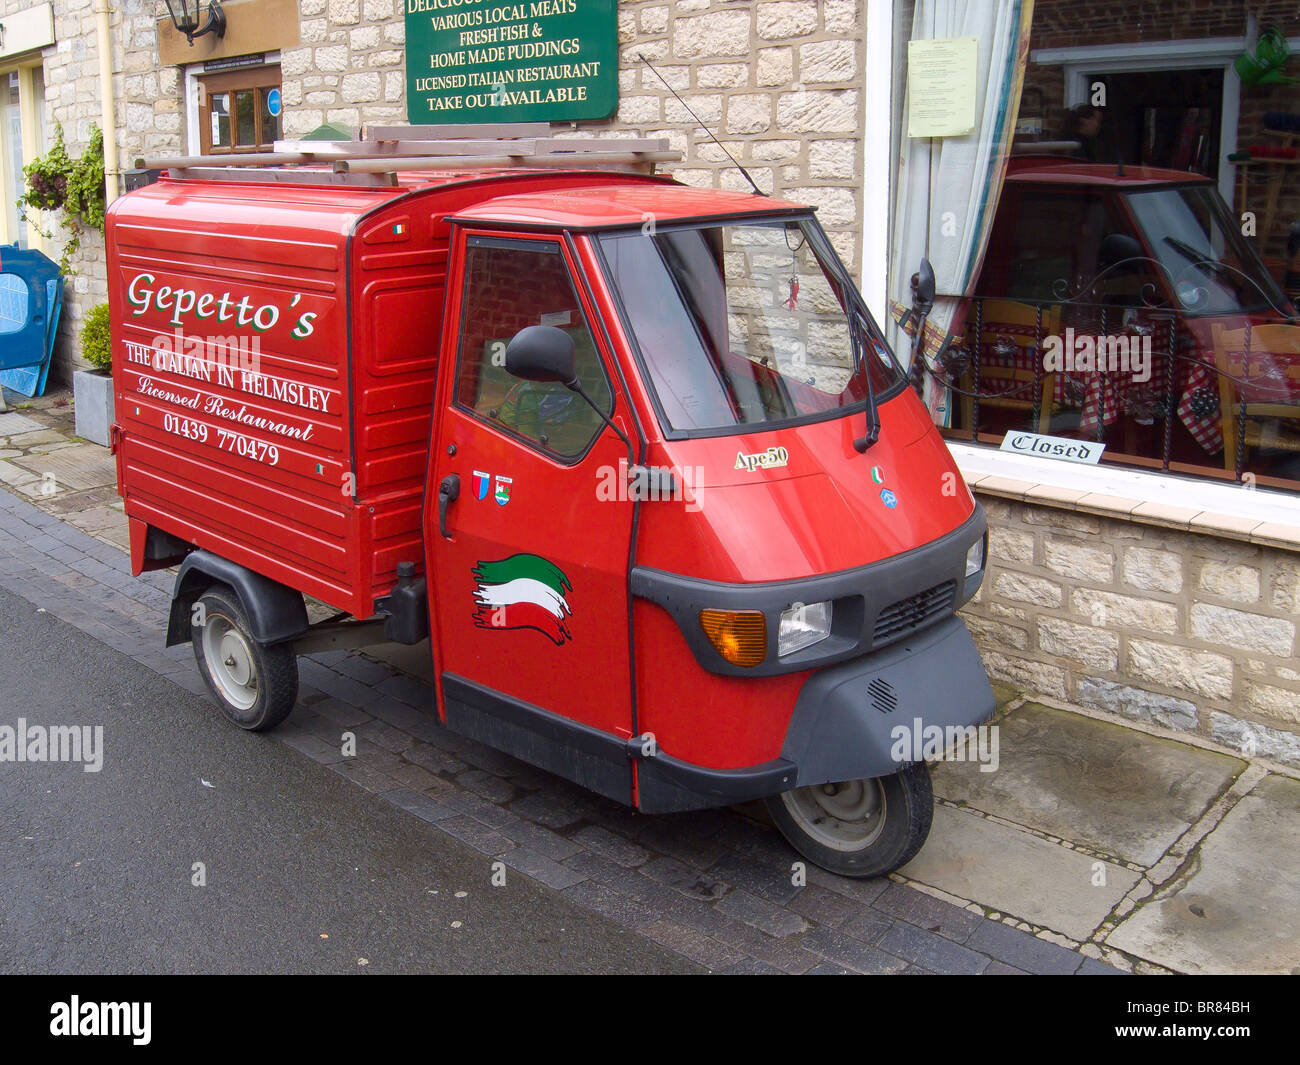 bright red piaggio ape 50 van used by an italian restaurant in stock photo royalty free image. Black Bedroom Furniture Sets. Home Design Ideas